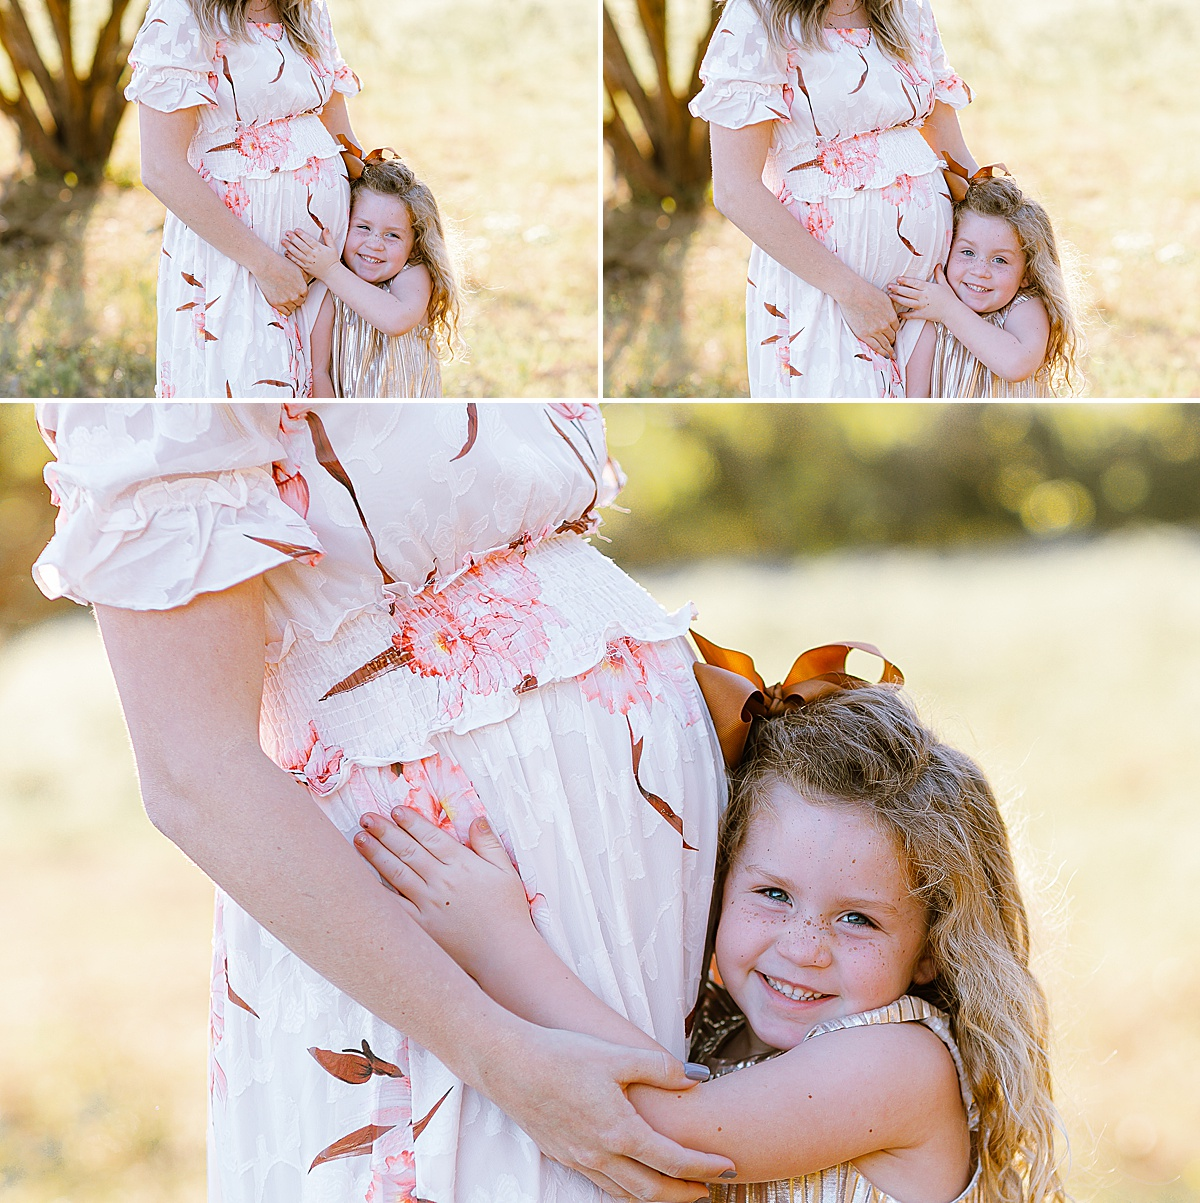 maternity-photo-session-lavernia-texas-carly-barton-photography_0012.jpg